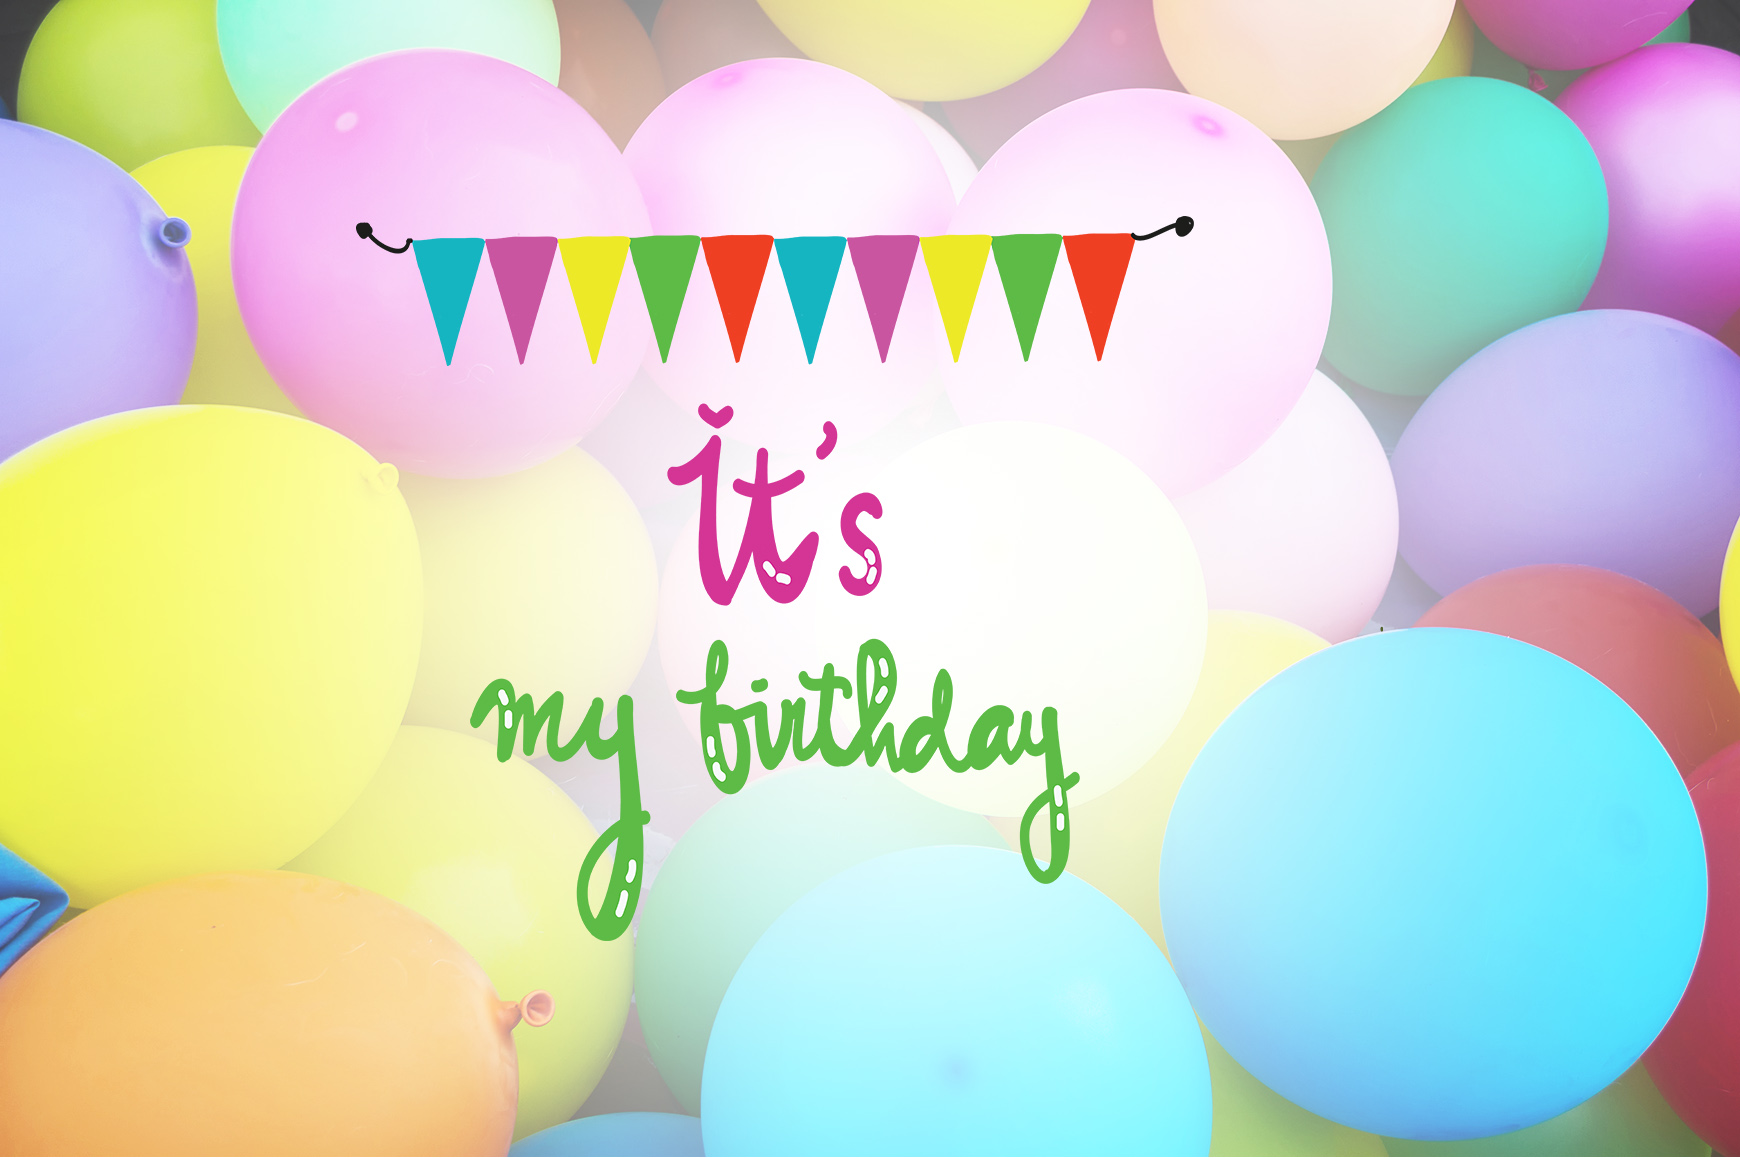 Swell Its My Birthday Quotes Graphic By Wienscollection Creative Personalised Birthday Cards Veneteletsinfo